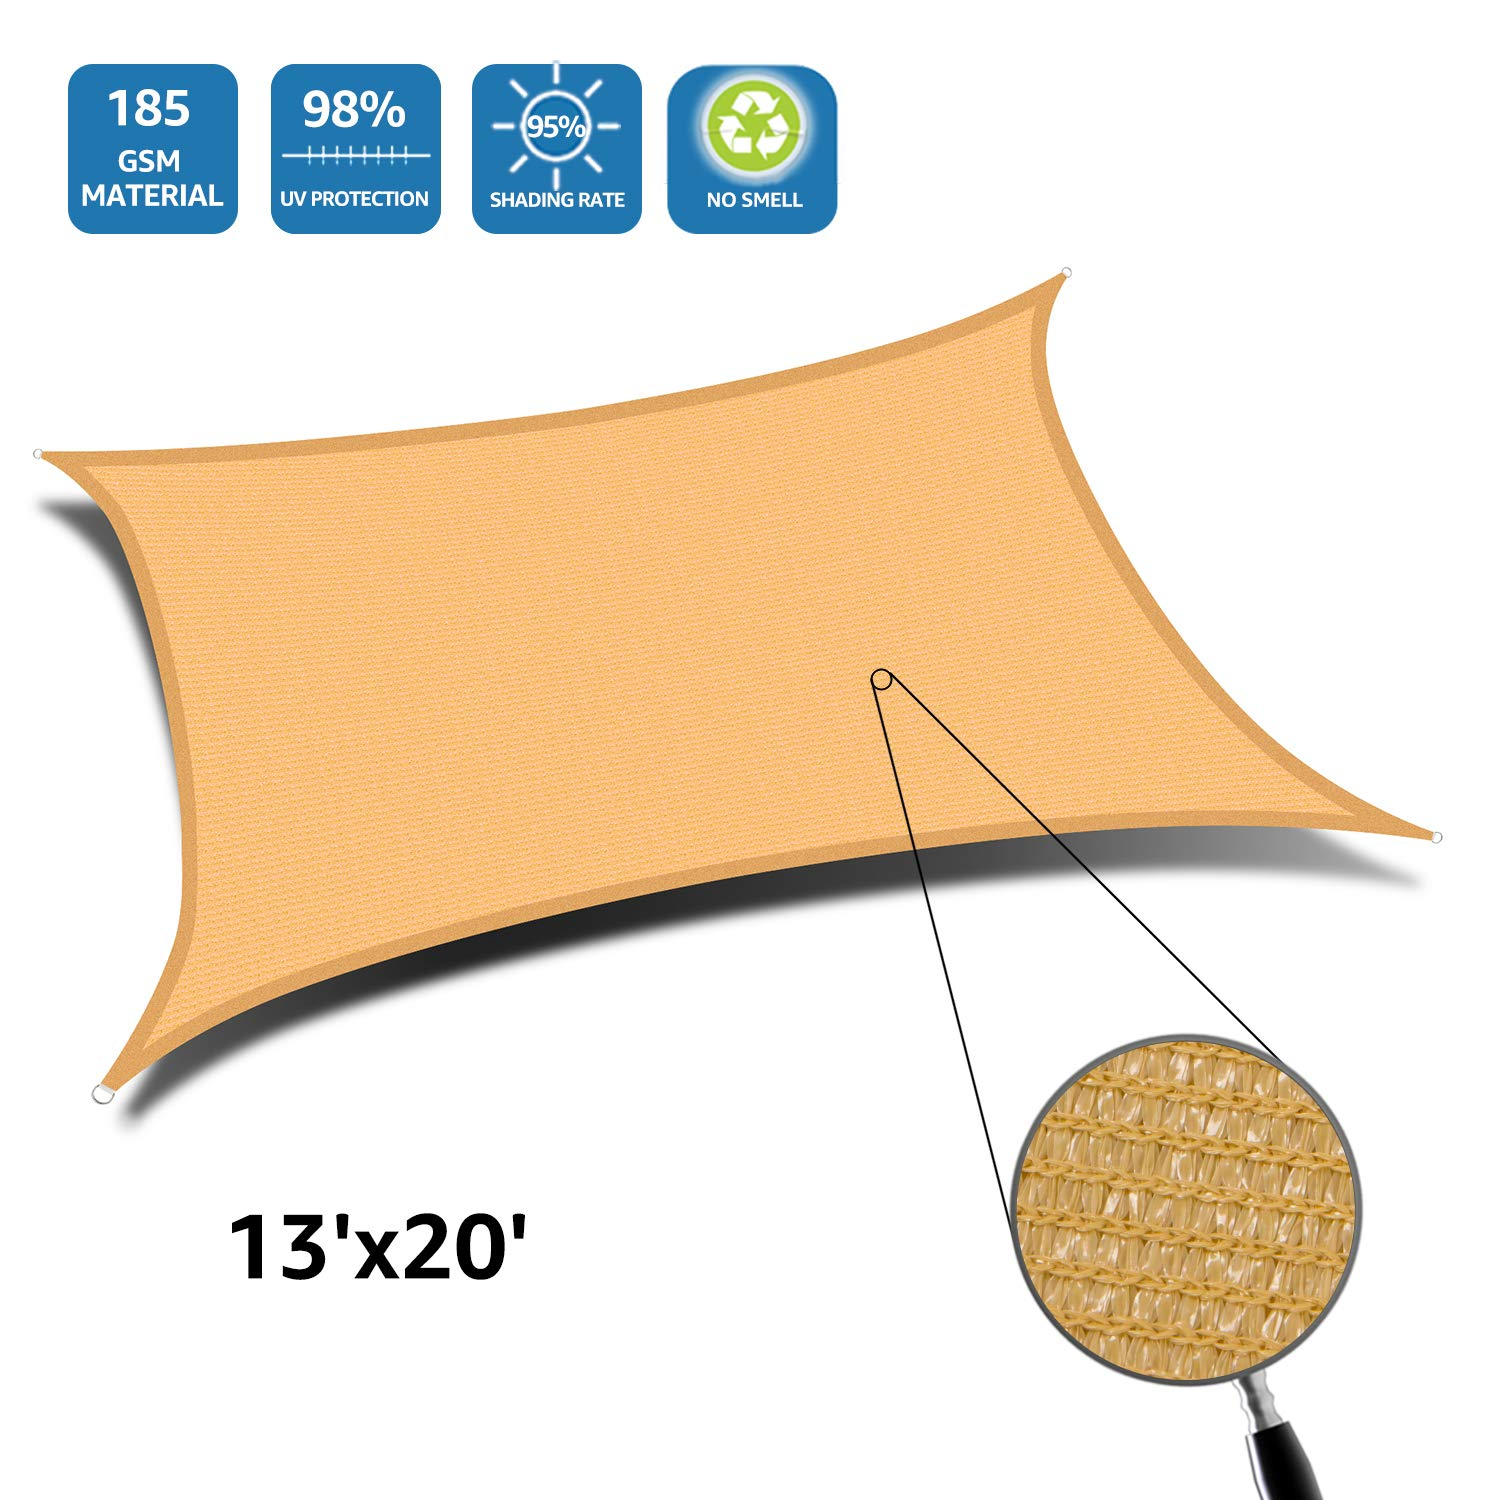 DOEWORKS Rectangle 13' X 20' Sun Shade Sail, UV Block for Outdoor Patio Garden Facility and Activities, Sand